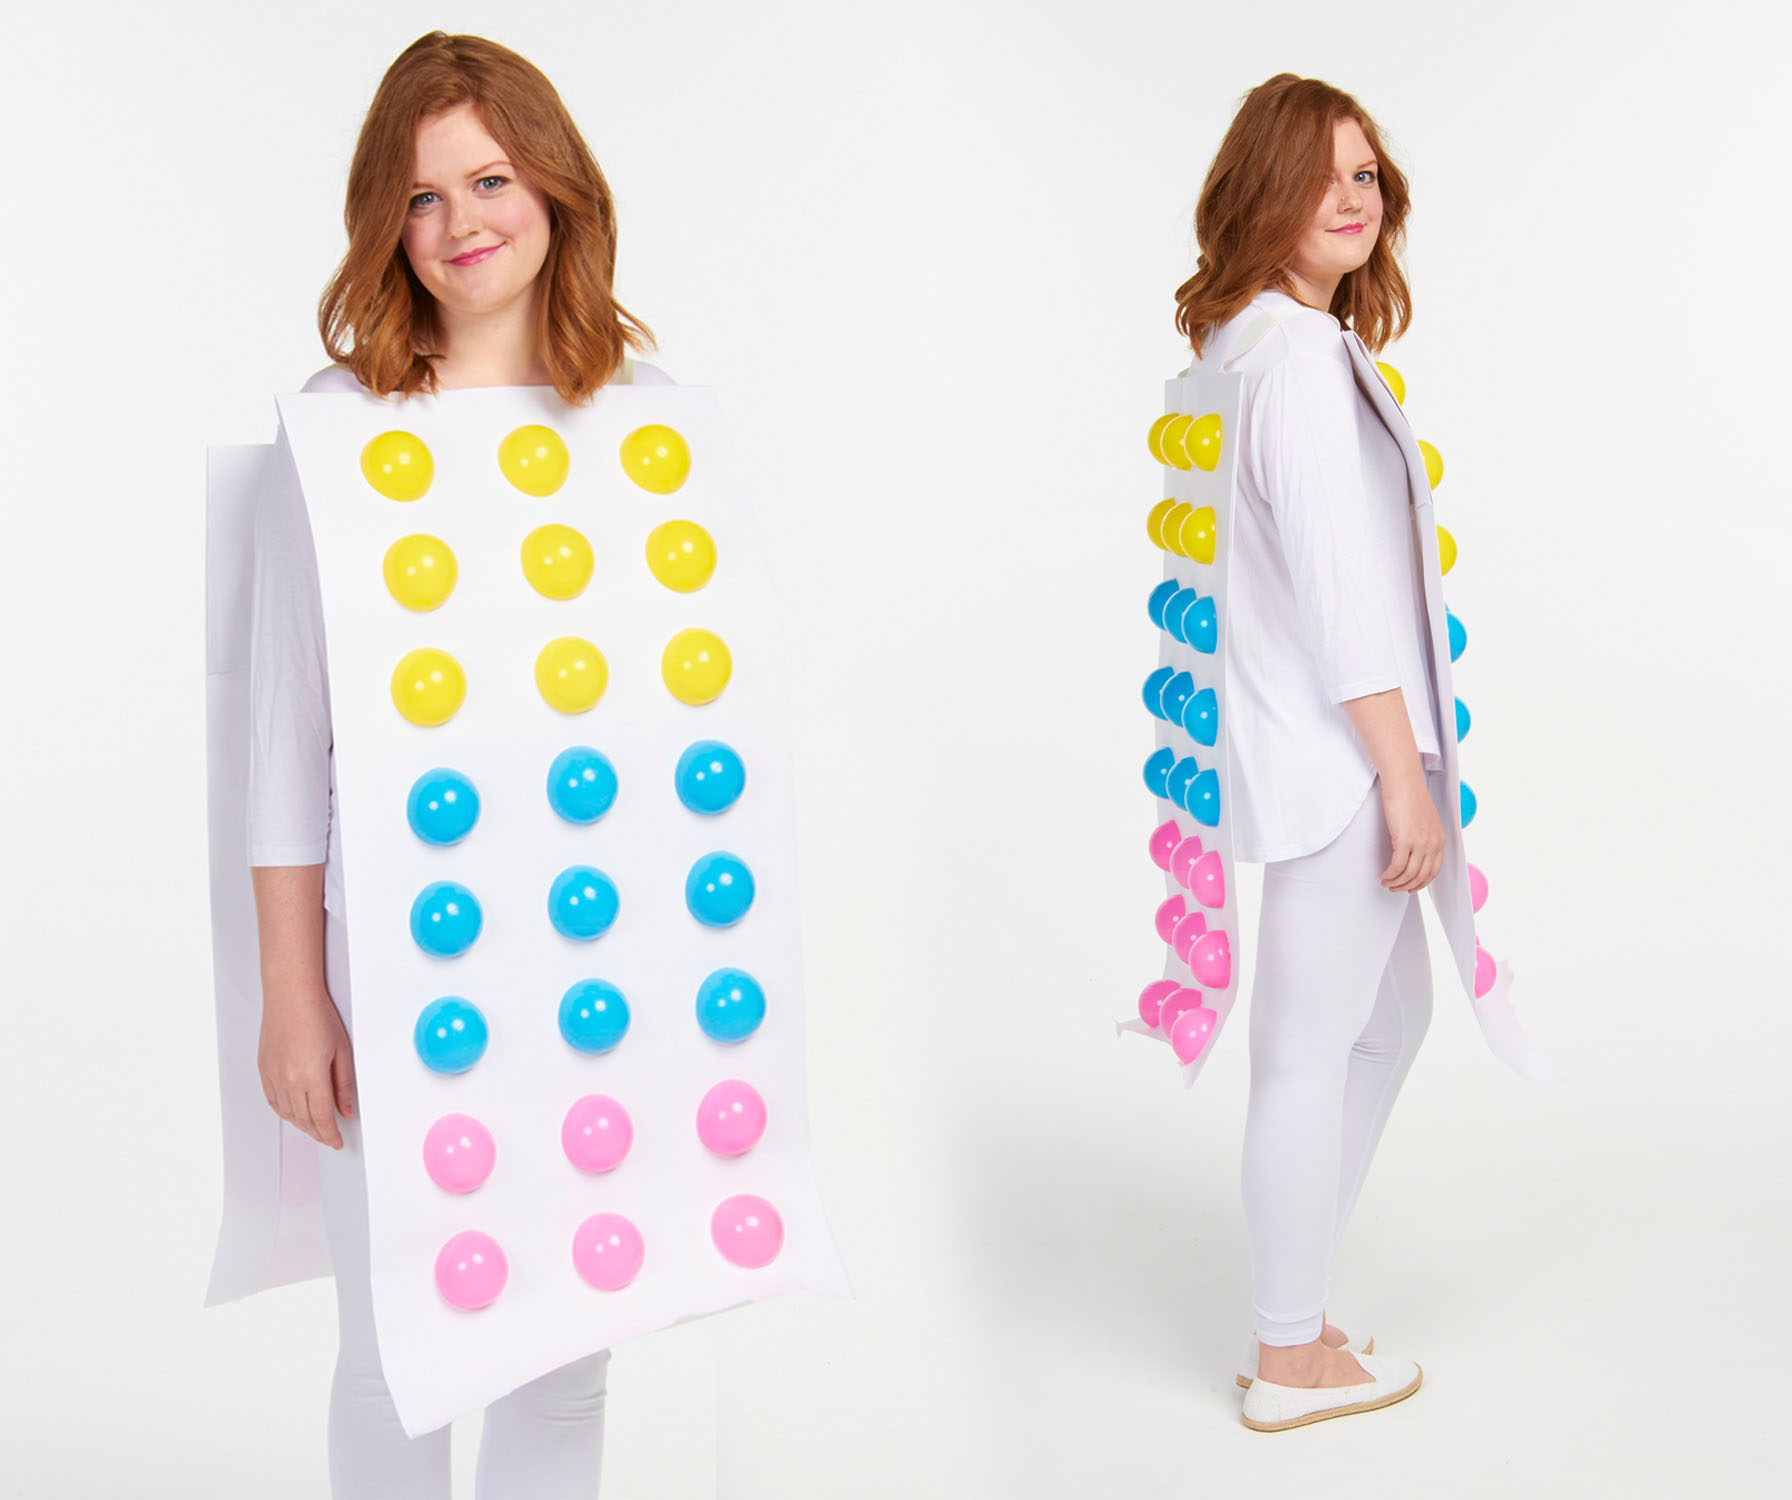 candy button halloween costume